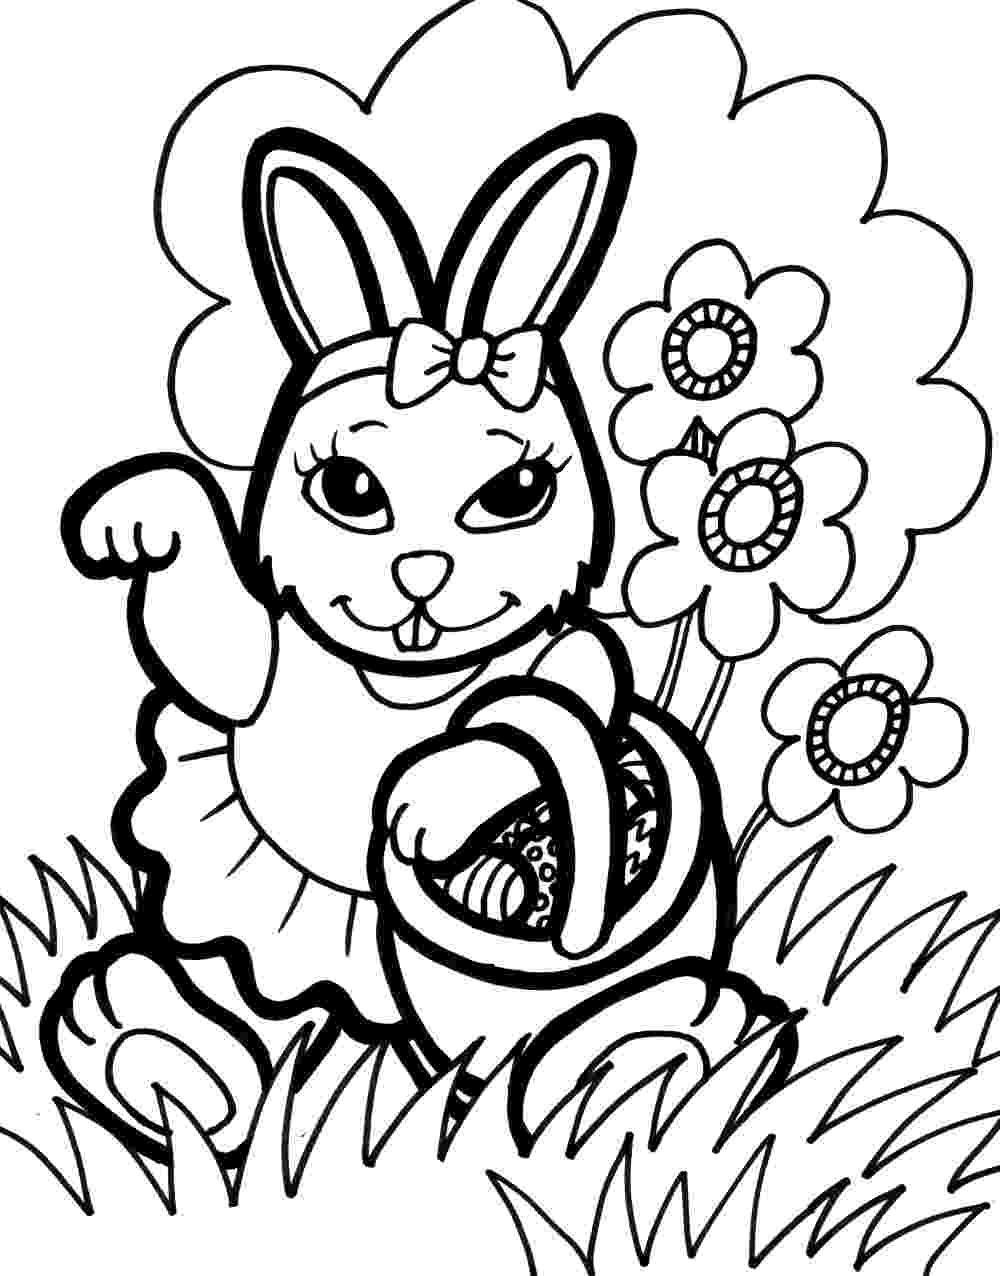 bunny coloring sheets free printable bunny coloring pages best coloring pages for kids free bunny coloring printable sheets